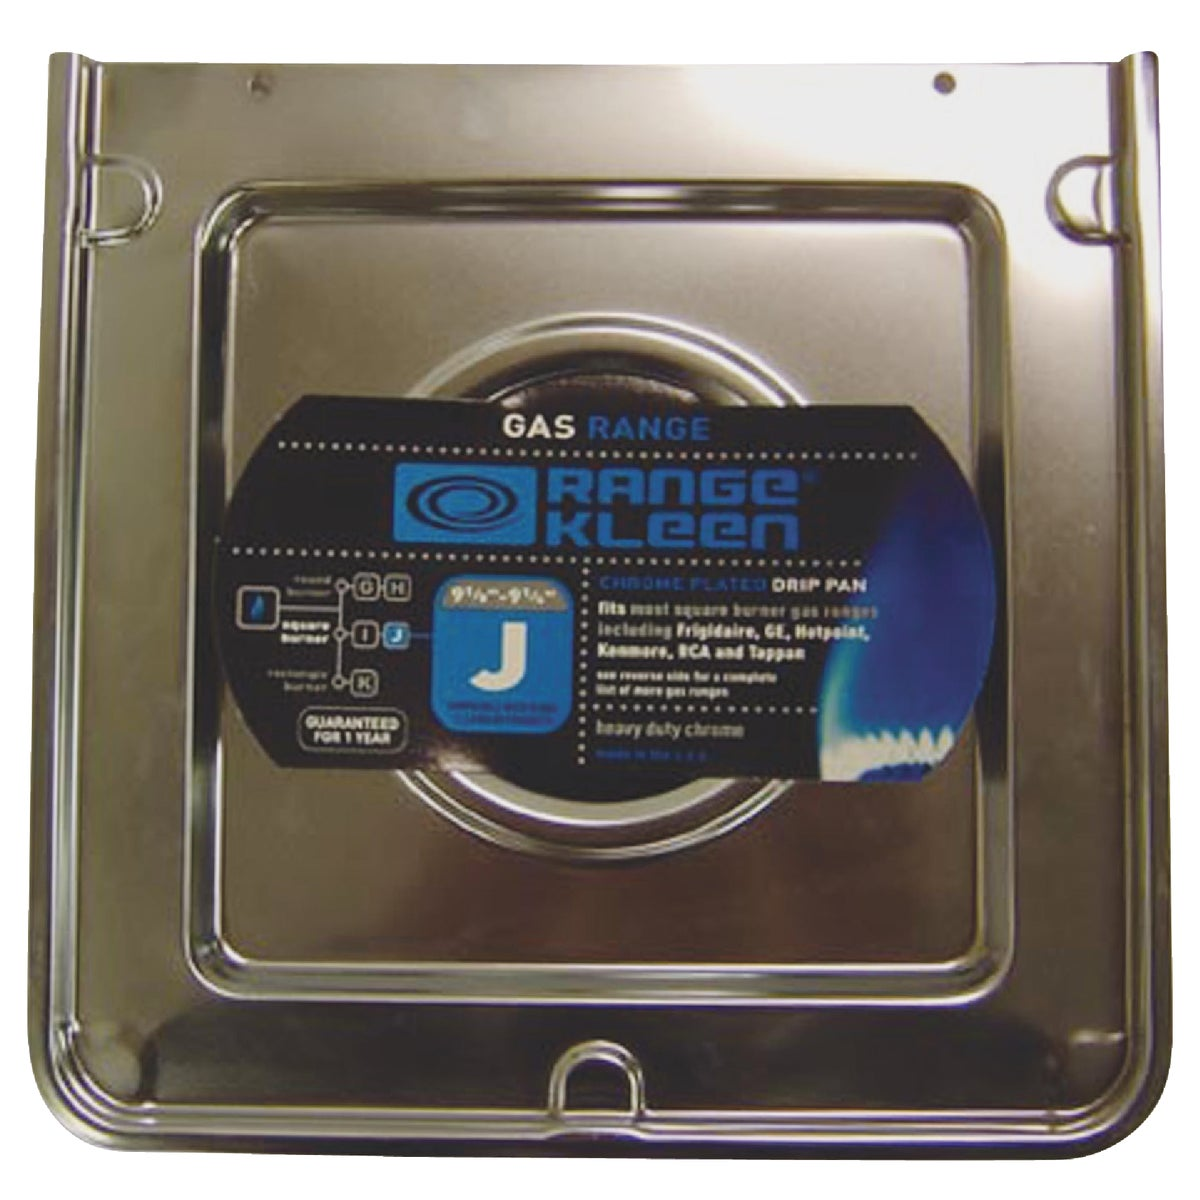 SQUARE REFLECTOR GAS PAN - SGP-401 by Range Kleen Mfg Inc